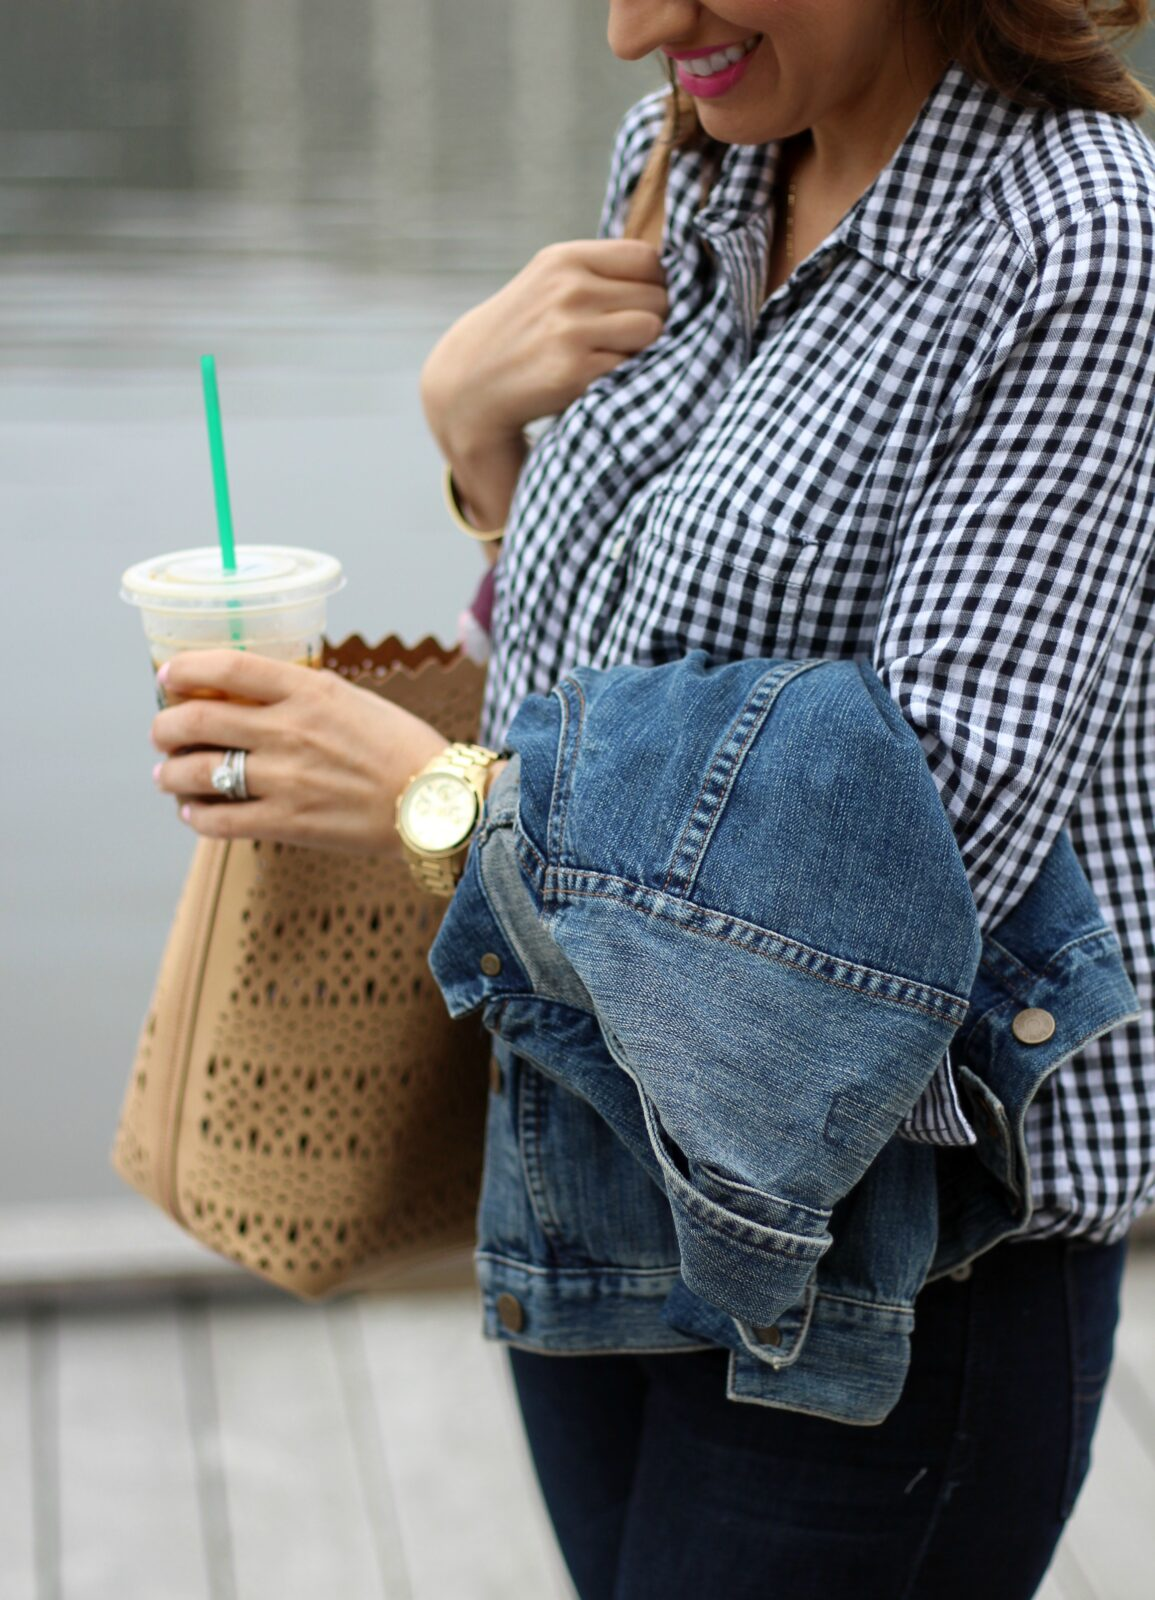 Gingham top, denim jacket, and starbucks